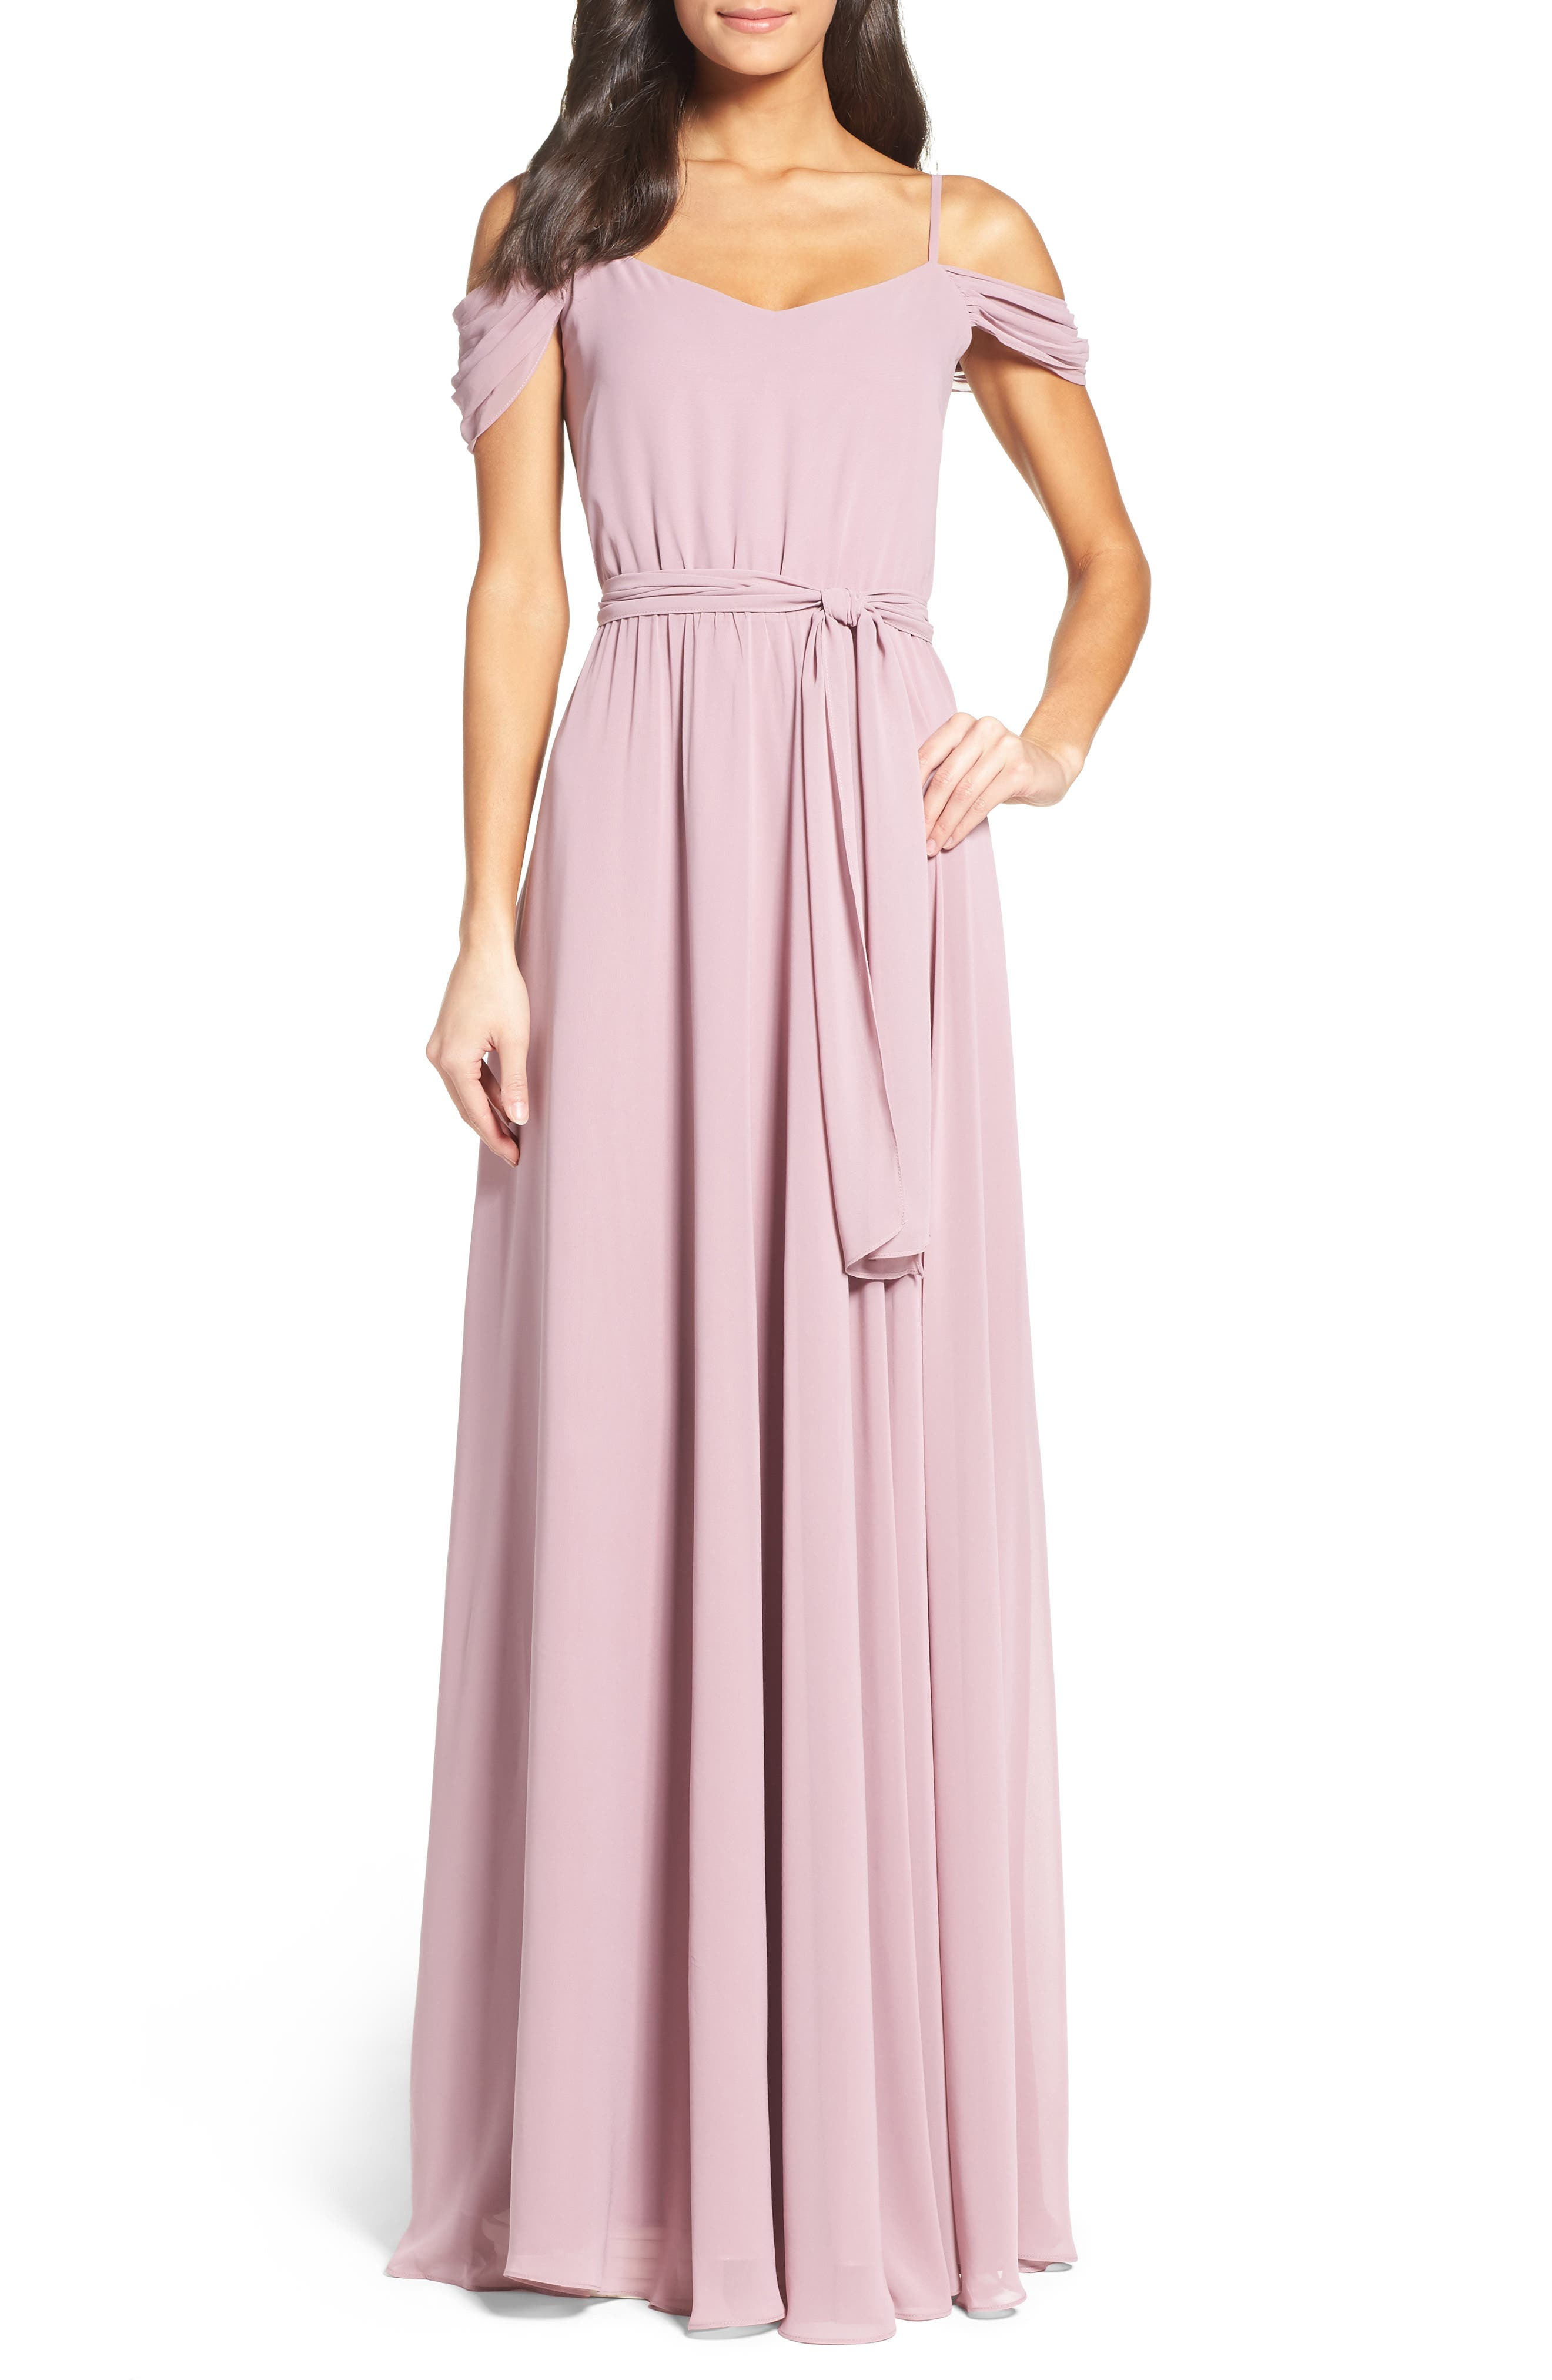 Ceremony by Joanna August Off the Shoulder Gown